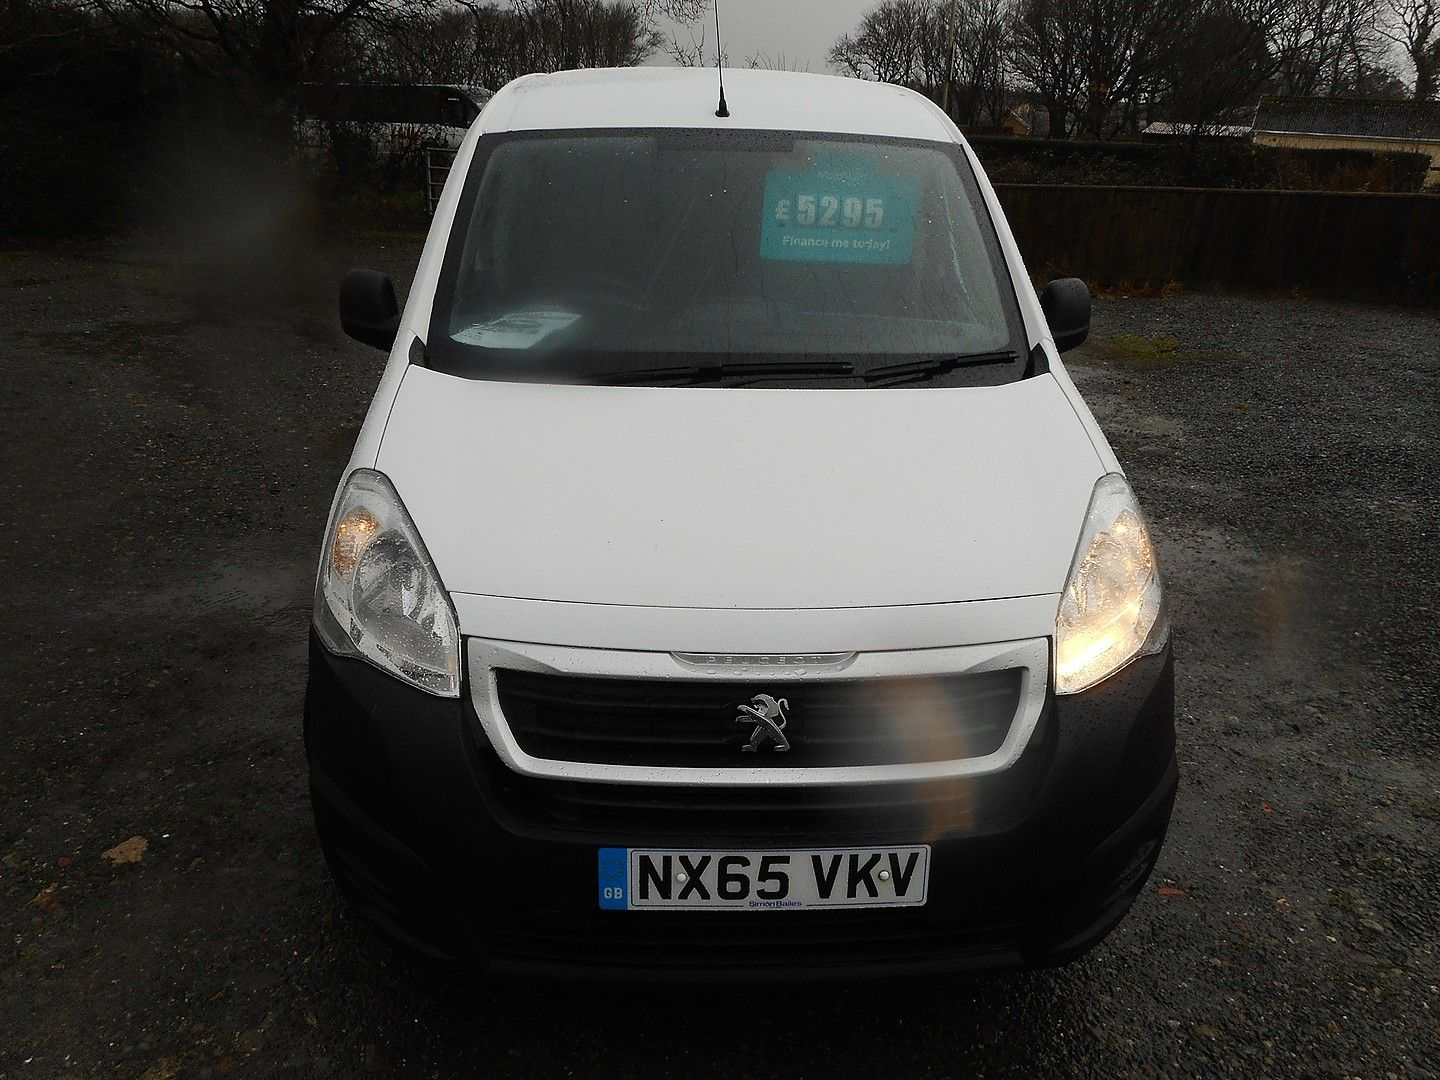 PEUGEOTPartner1.6HDi 92 850 S L1 for sale